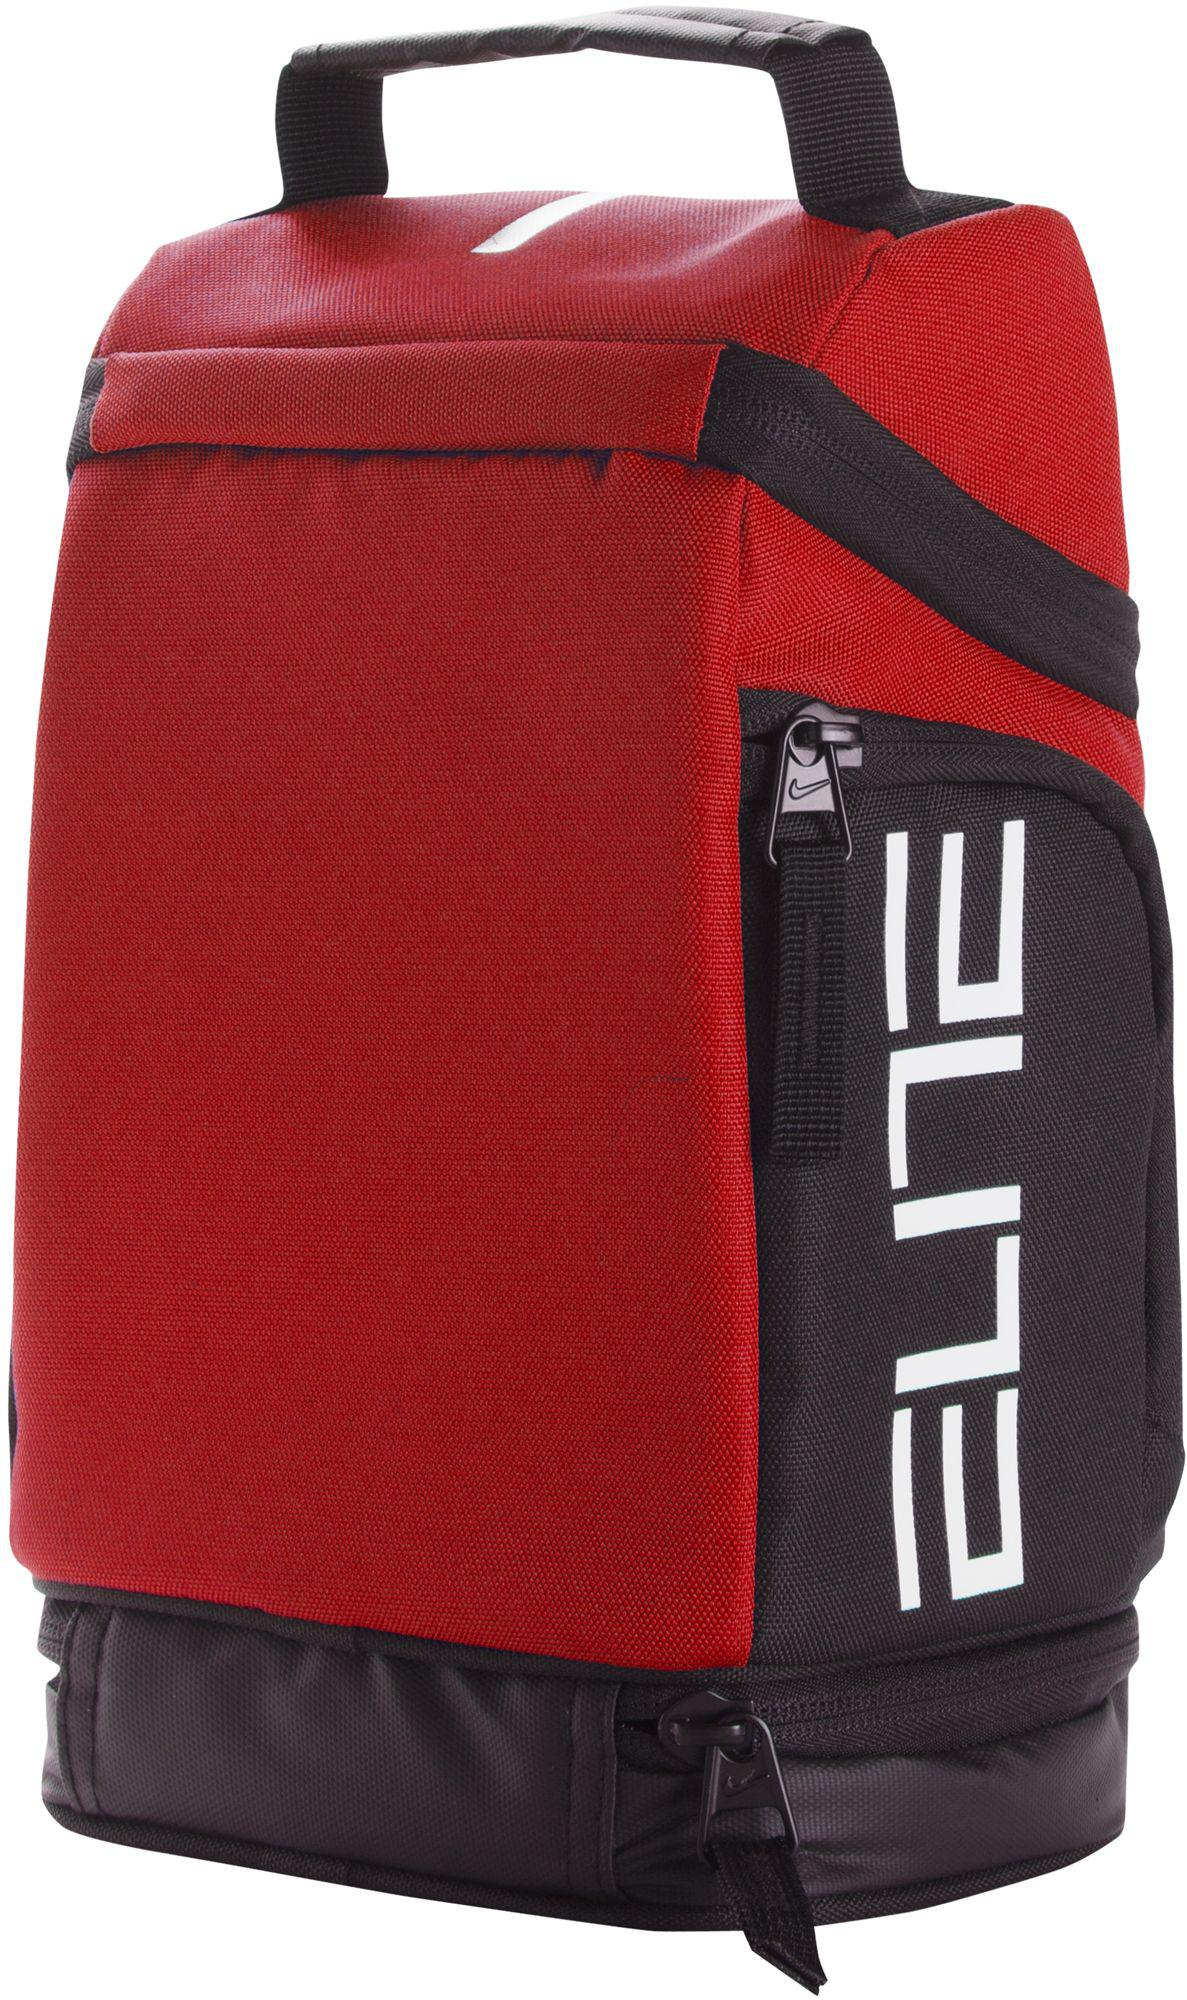 553c15fd9b0f Lyst - Nike Elite Fuel Pack Lunch Tote Bag in Red for Men